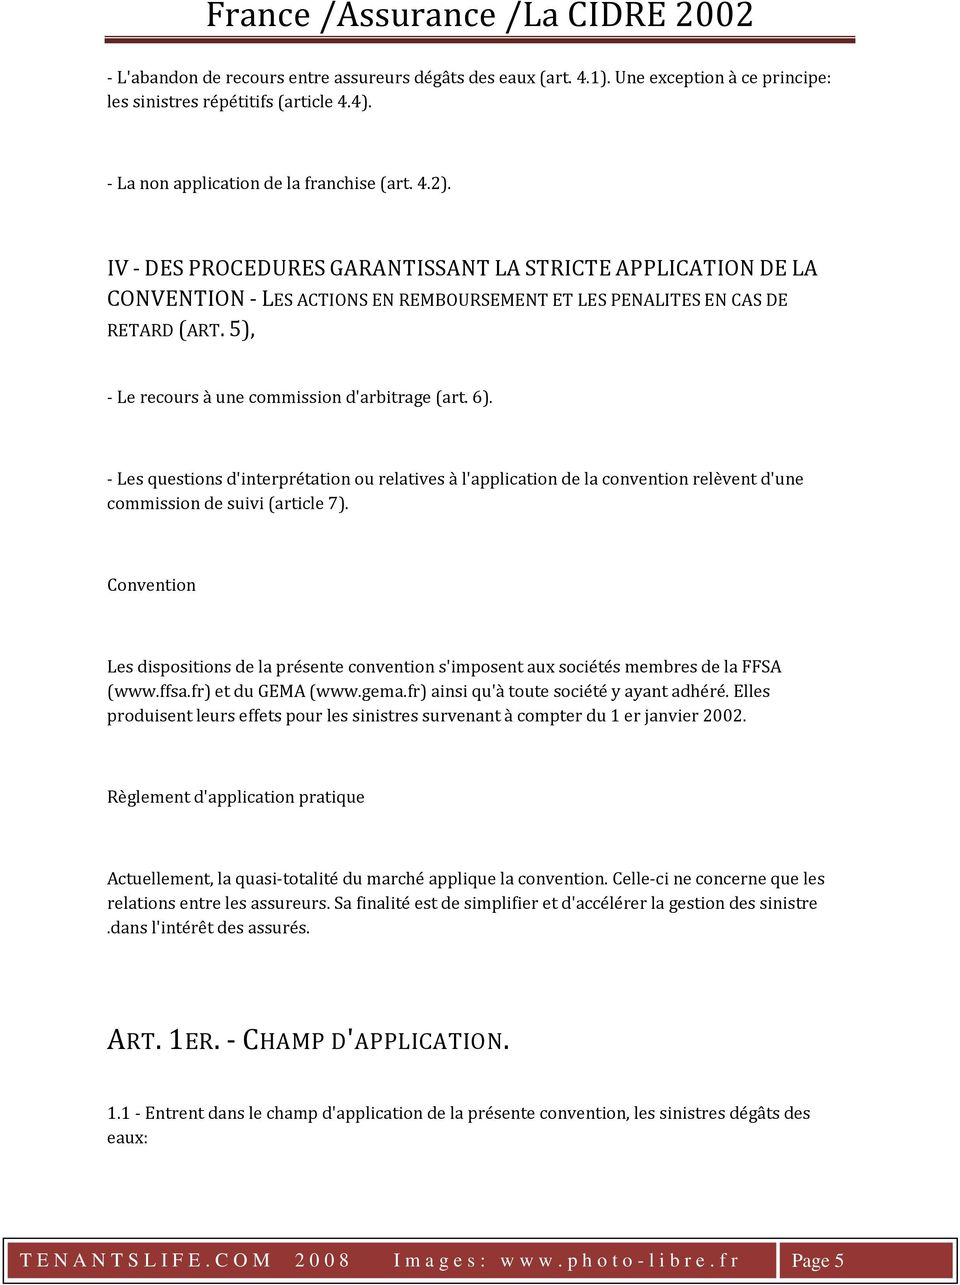 - Les questions d'interprétation ou relatives à l'application de la convention relèvent d'une commission de suivi (article 7).